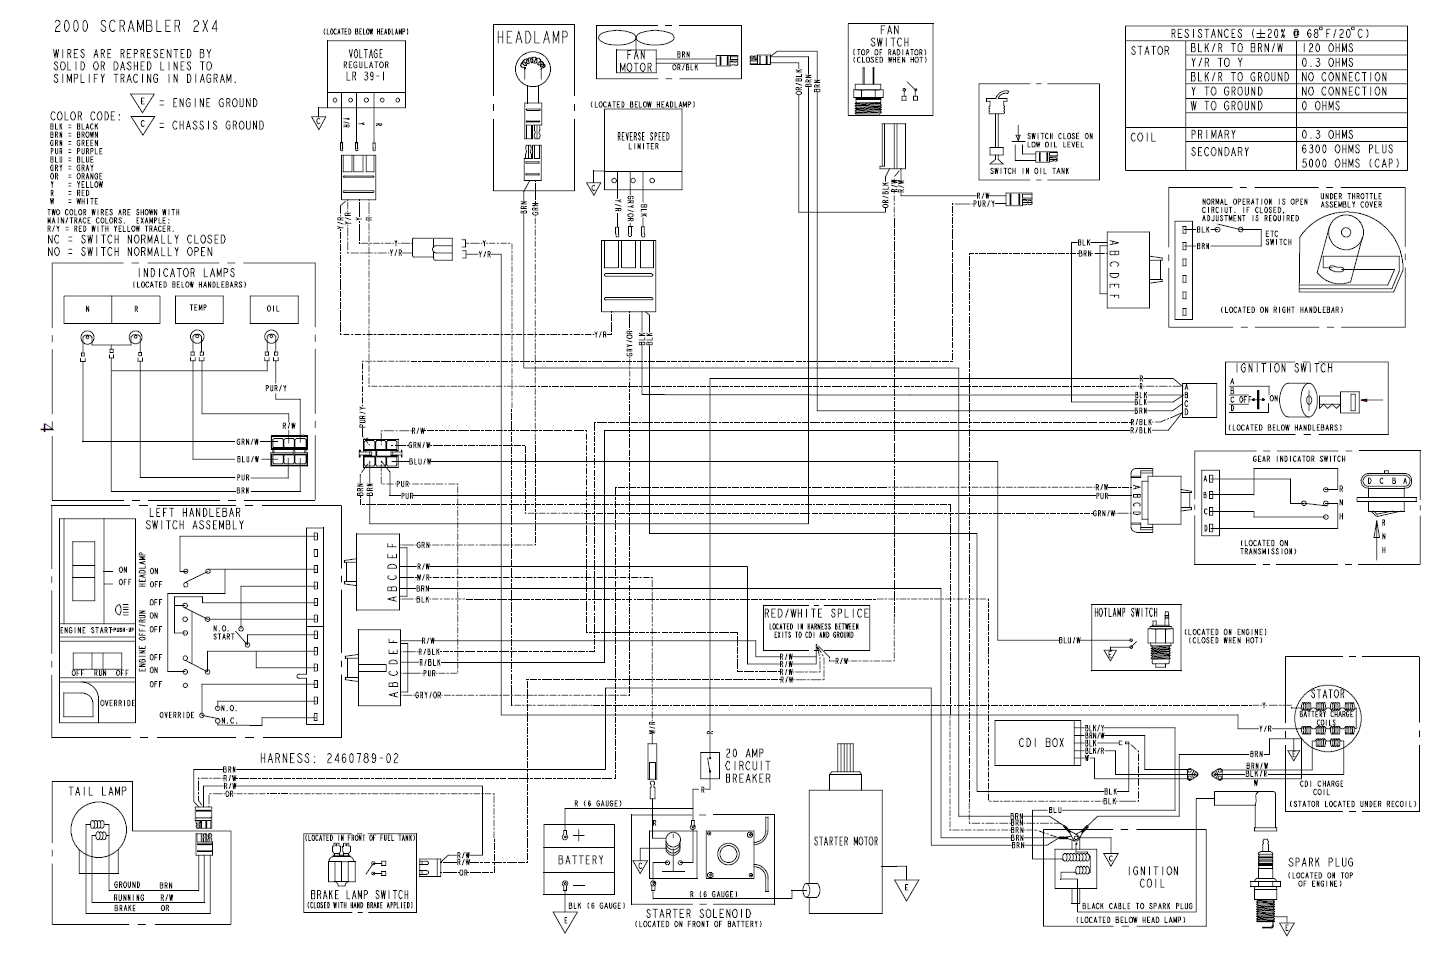 Wiring Diagram Creativities Graphyka Diagram Gallery Moreover Nutone on 4 wire dryer diagram, 4 wire doorbell diagram, 4 wire electrical diagram, 4 wire telephone line diagram, 4 wire ceiling fan diagram,